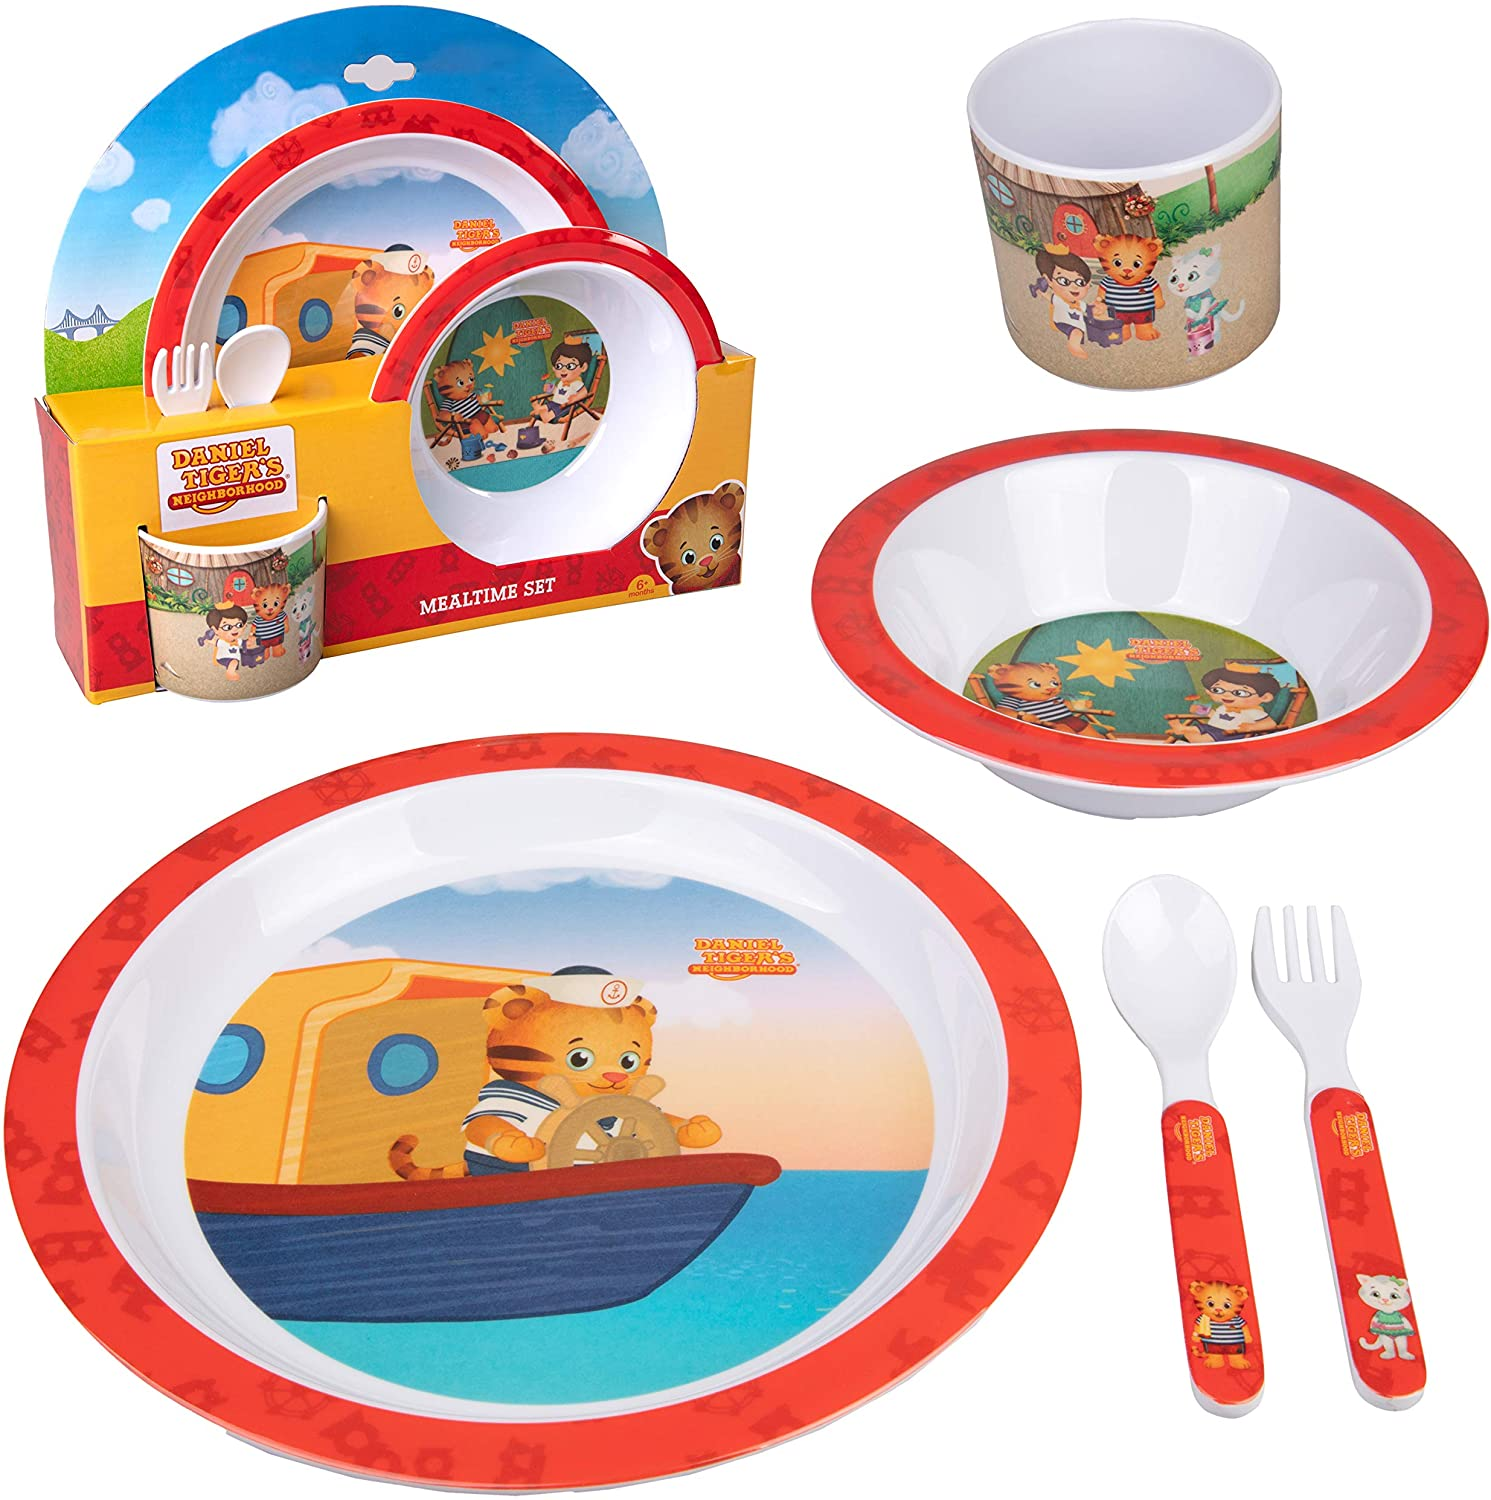 Daniel Tiger 5 Pc Mealtime Feeding Set for Kids and Toddlers - Includes Plate, Bowl, Cup, Fork and Spoon Utensil Flatware - Durable, Dishwasher Safe, BPA Free (Red)